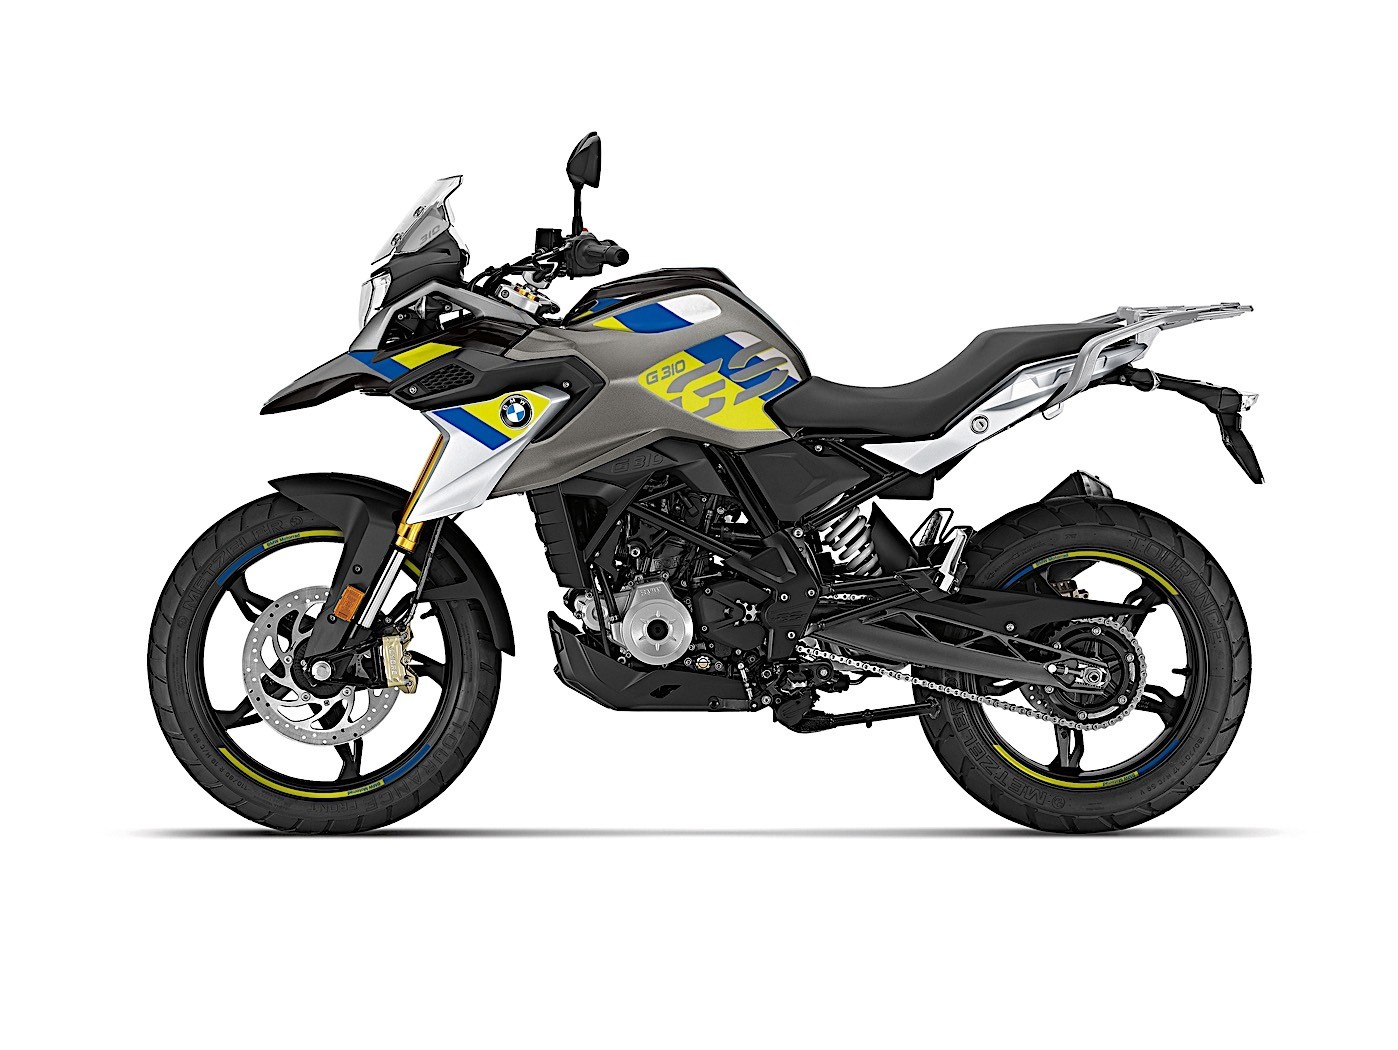 tattoo-your-bike-with-one-of-these-bmw-motorrad-stickers-8